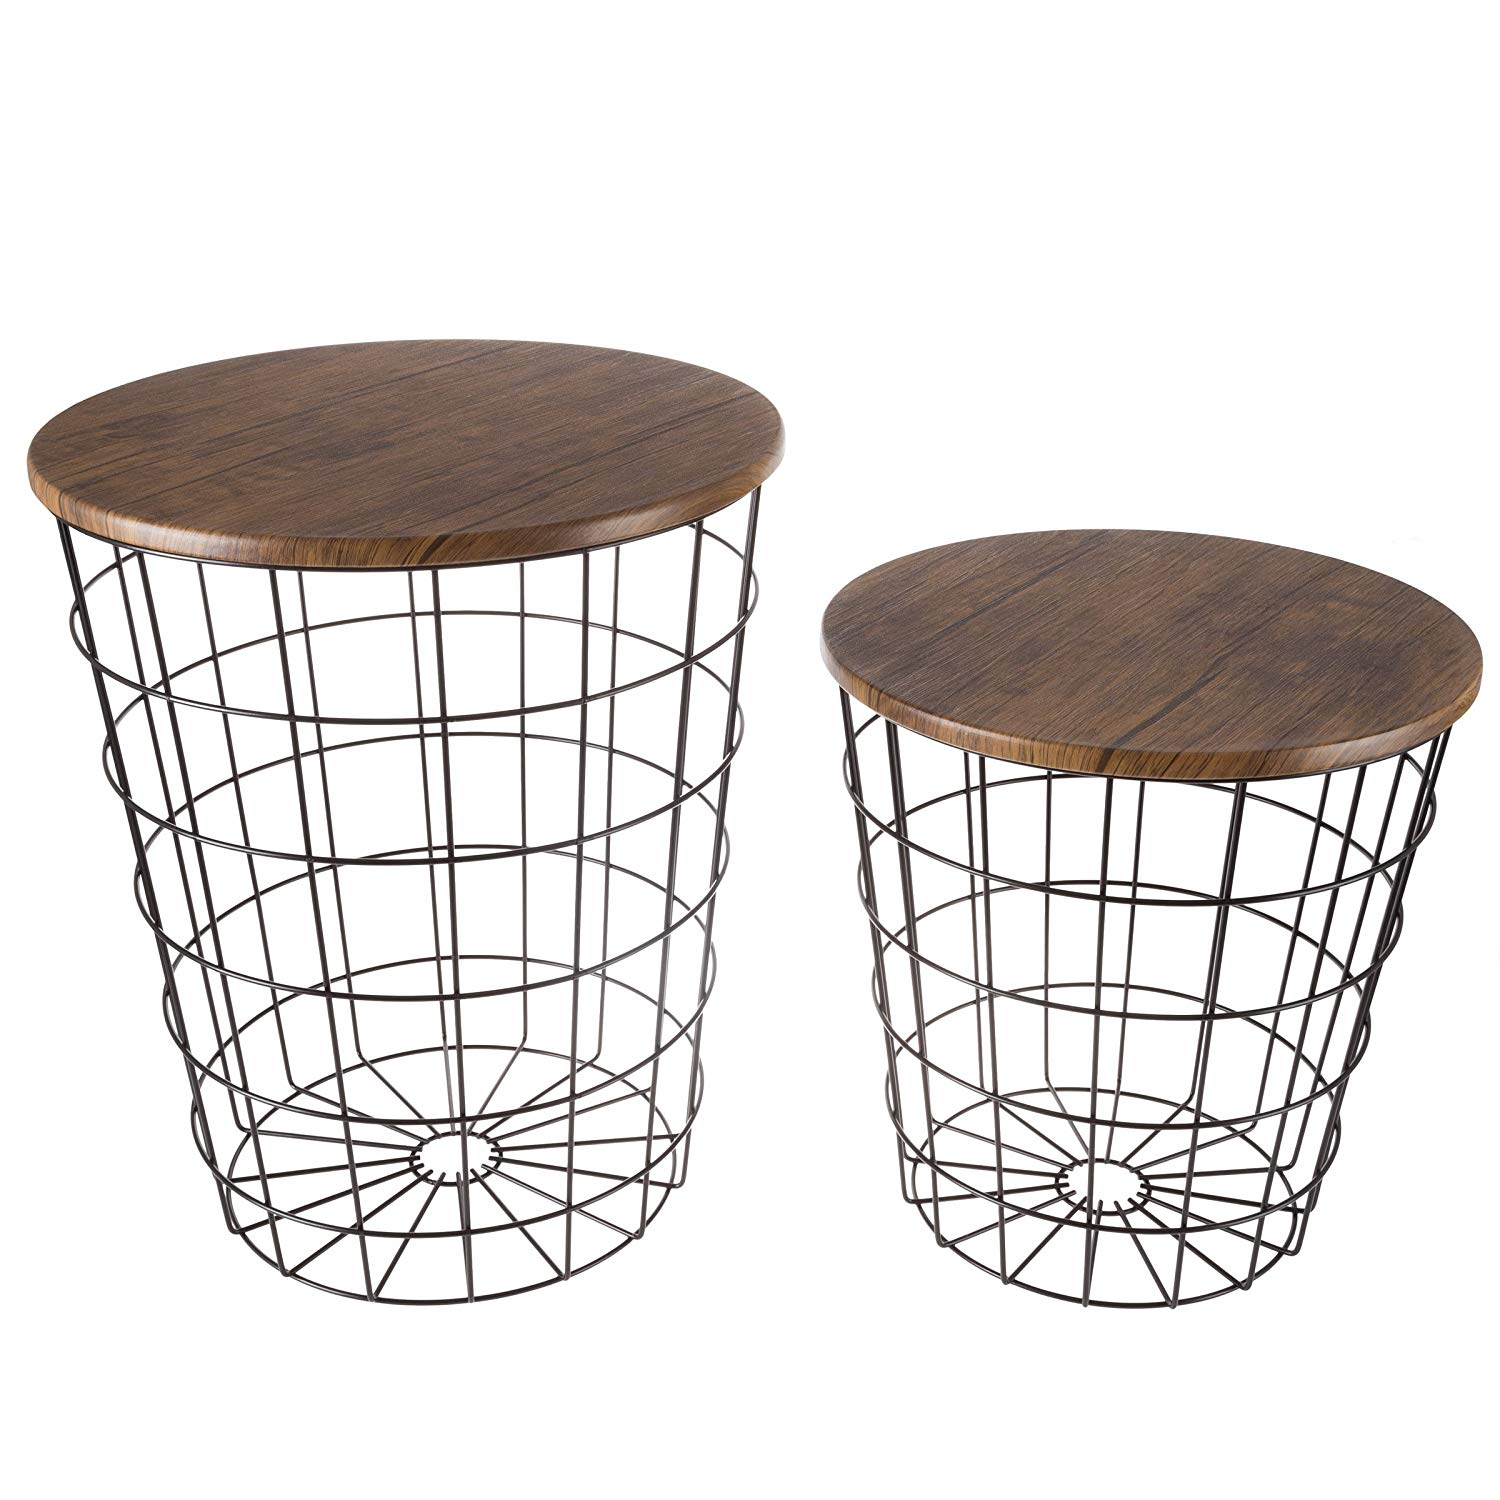 lavish home endtbl set nesting end storage round accent table with convertible metal basket wood veneer top side tables black kitchen lift coffee ikea trunk bedside brown nest